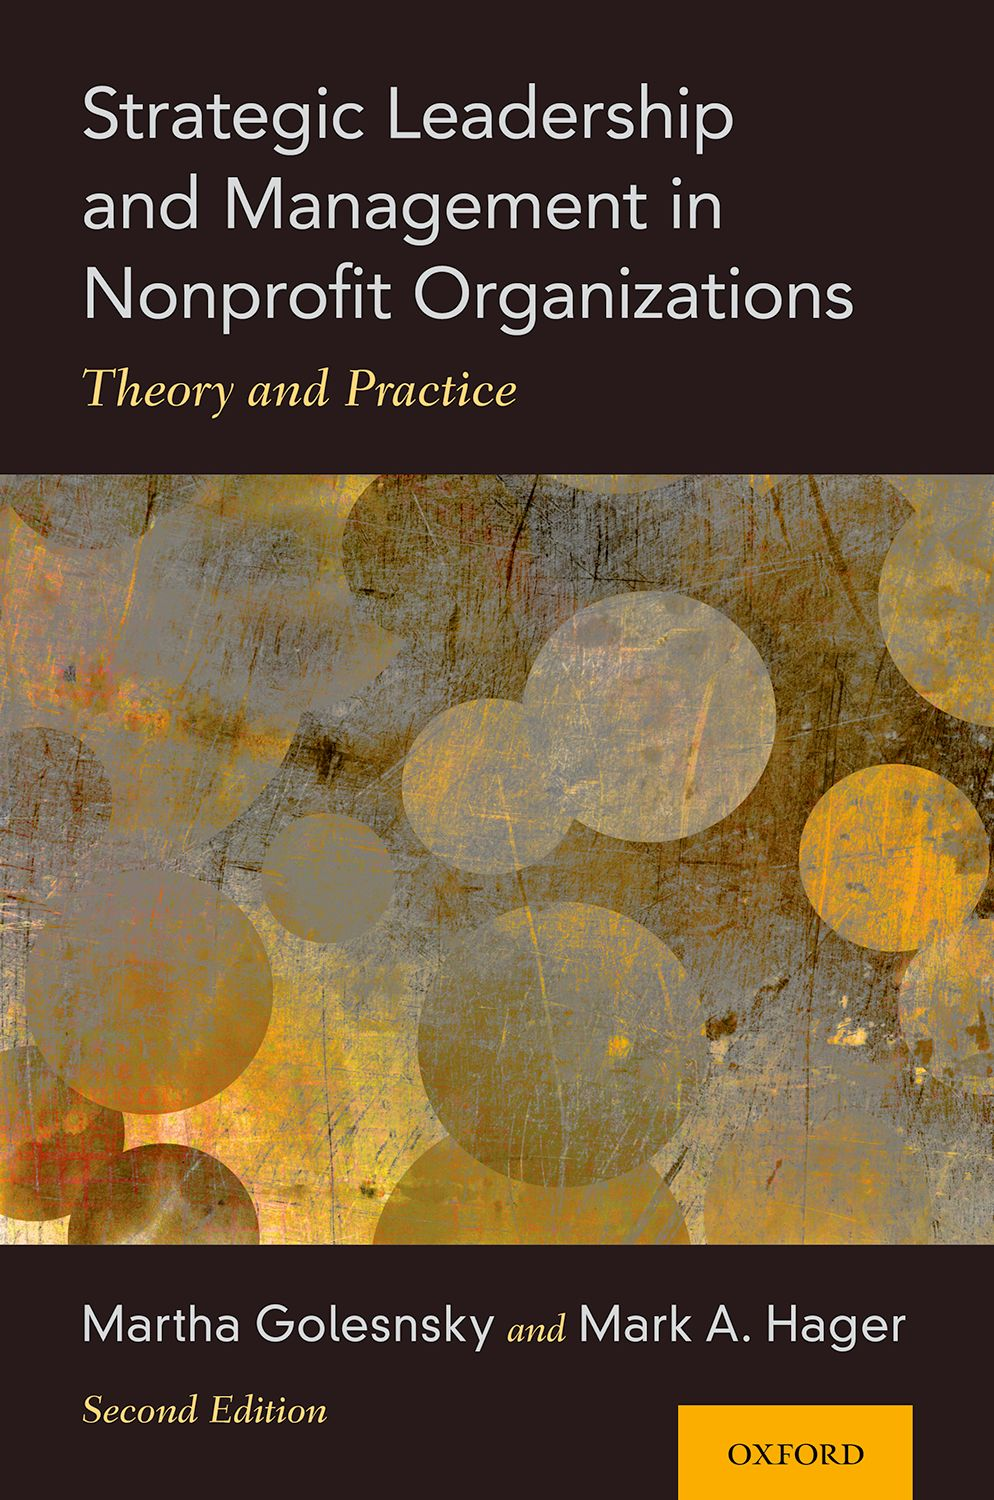 Strategic Leadership and Management in Nonprofit Organizations 2e